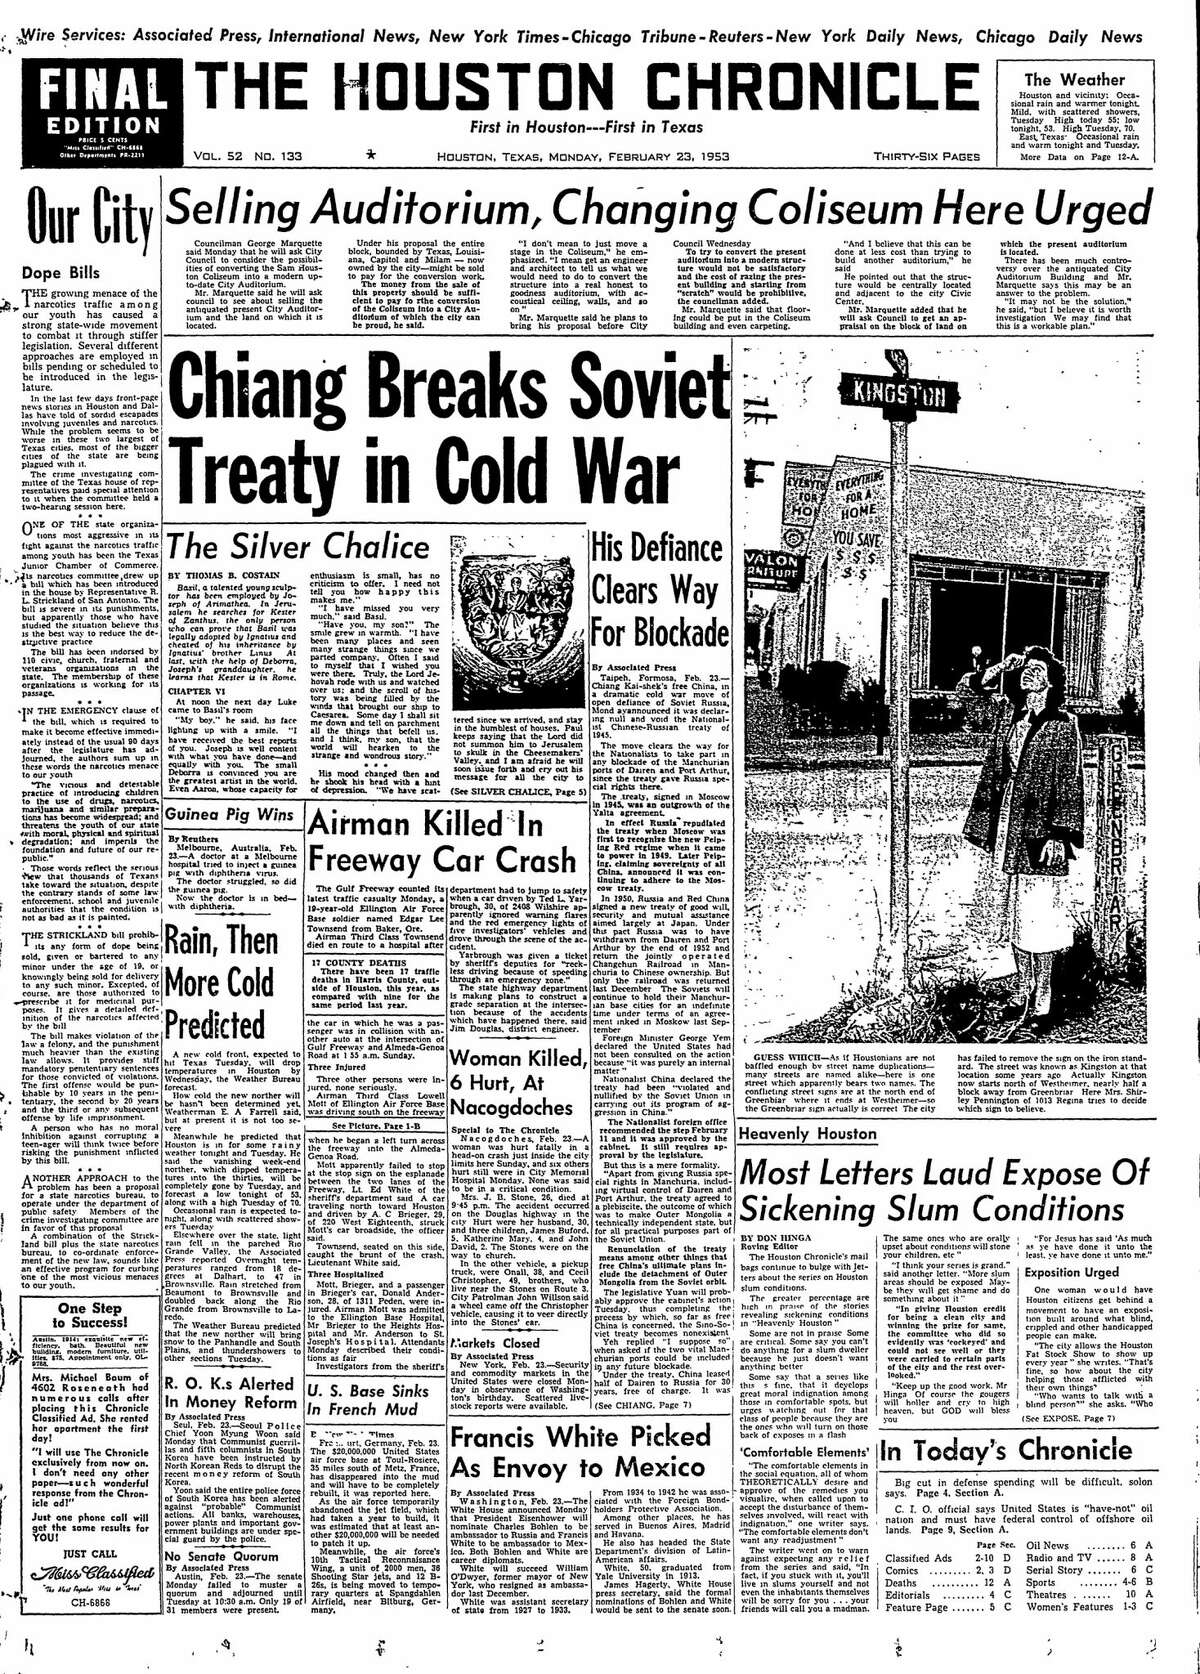 Houston Chronicle front page for Feb. 23, 1953.